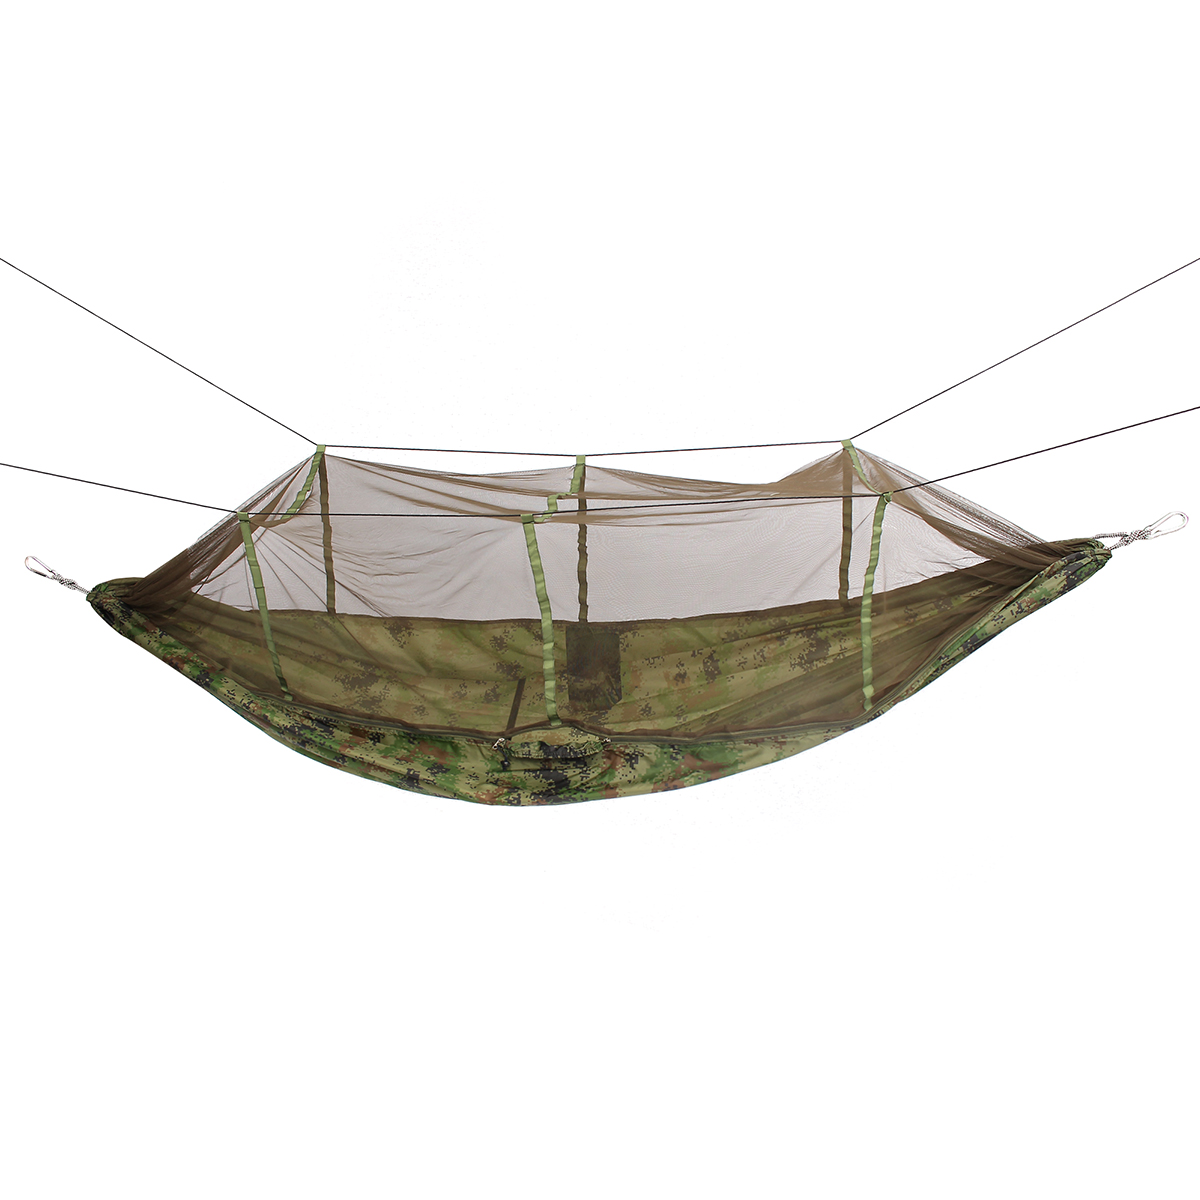 Benryhome Ipree Portable Double Person Hammock Swing